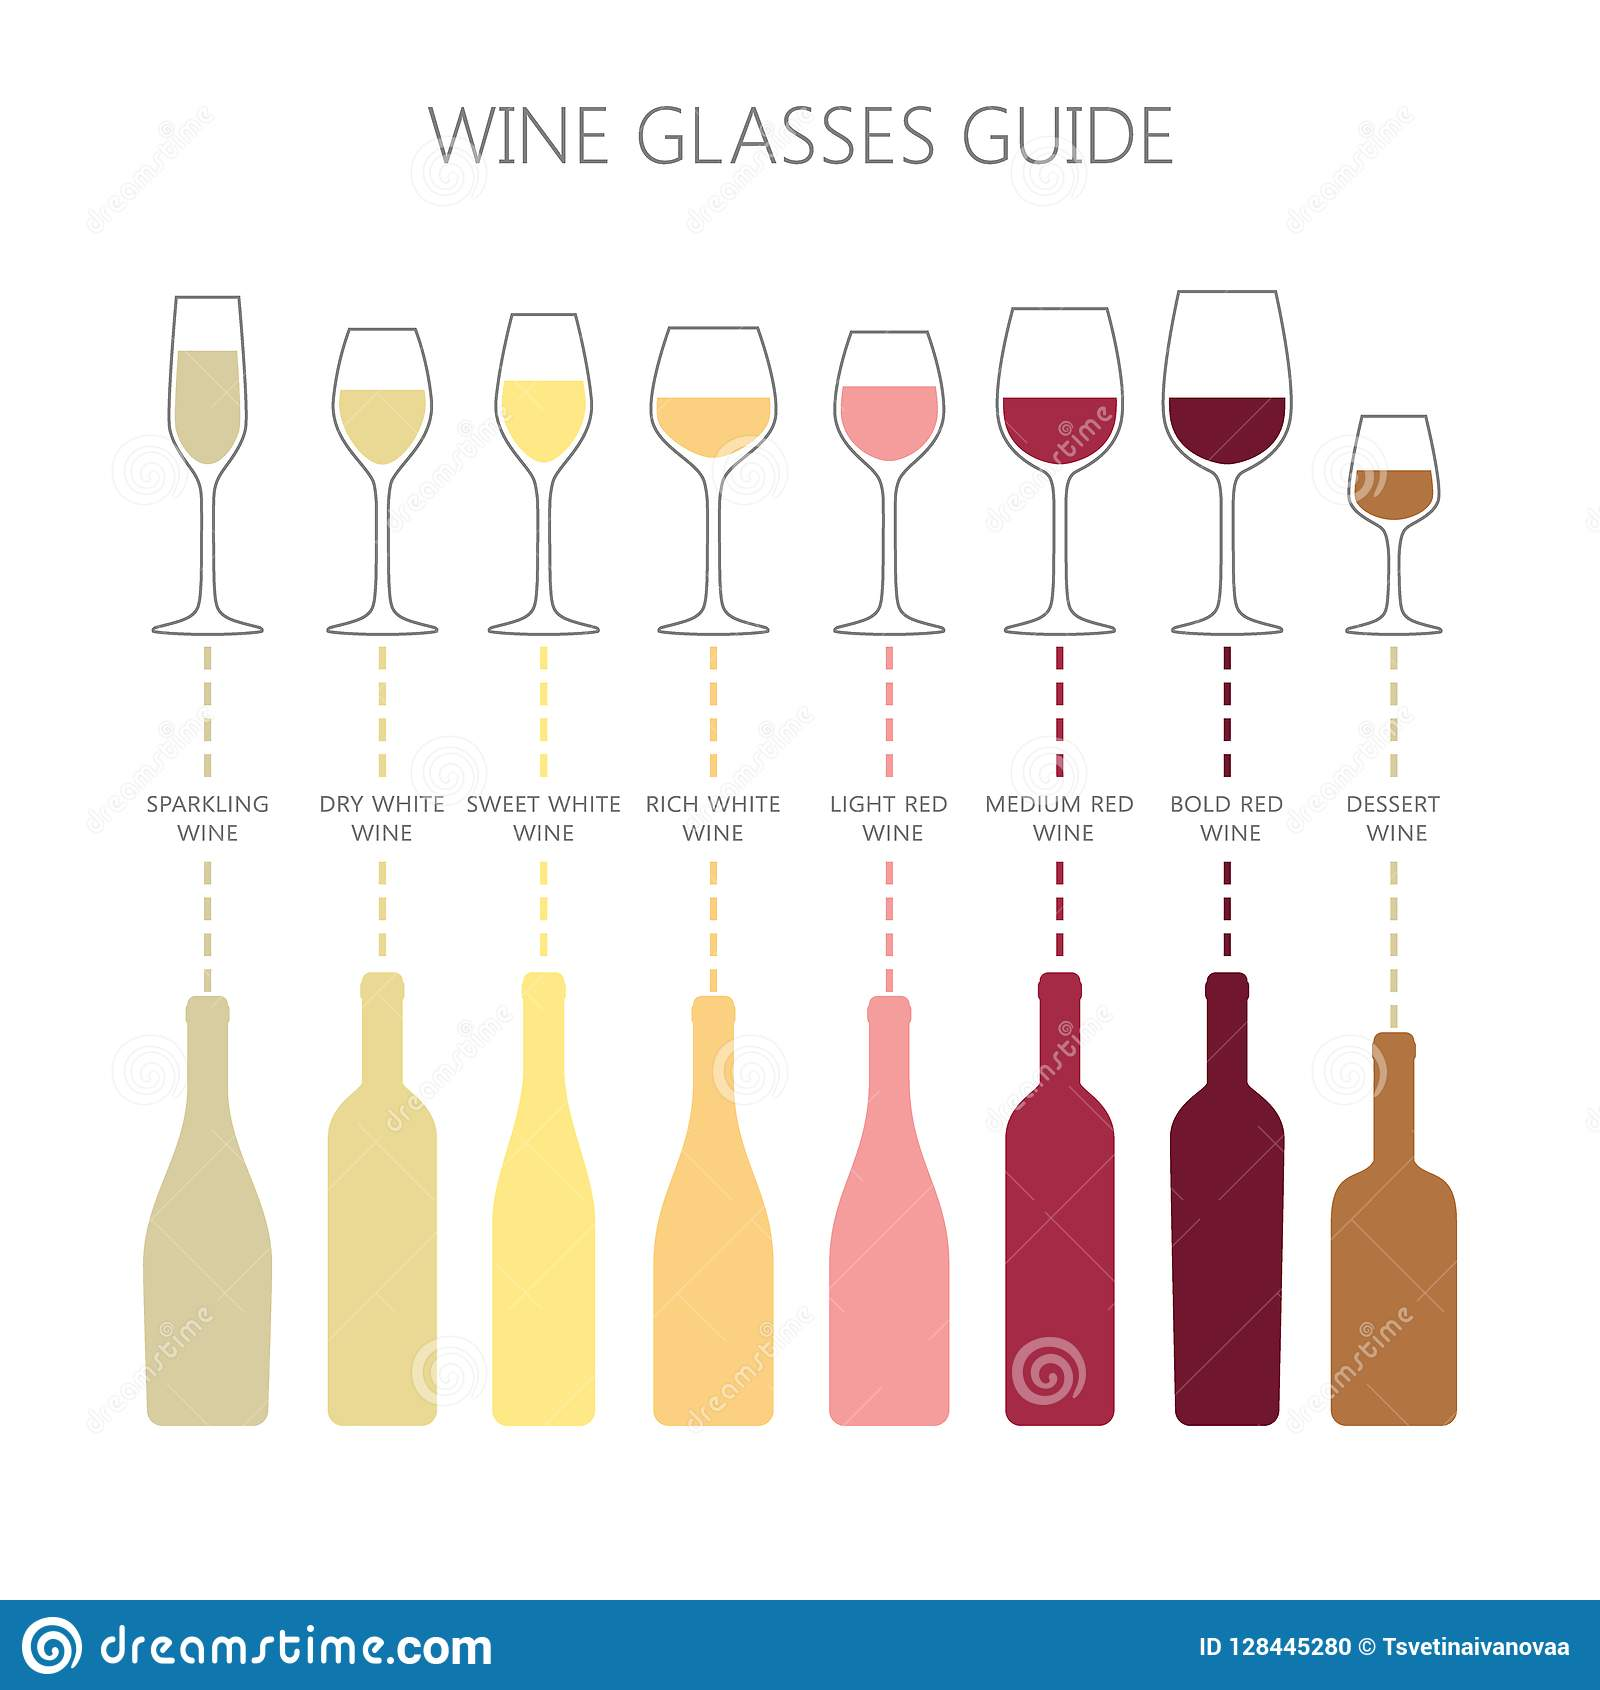 3a2e9f84eed Wine glasses and bottles guide infographic. Colorful vector wine glass and  wine bottle types icons